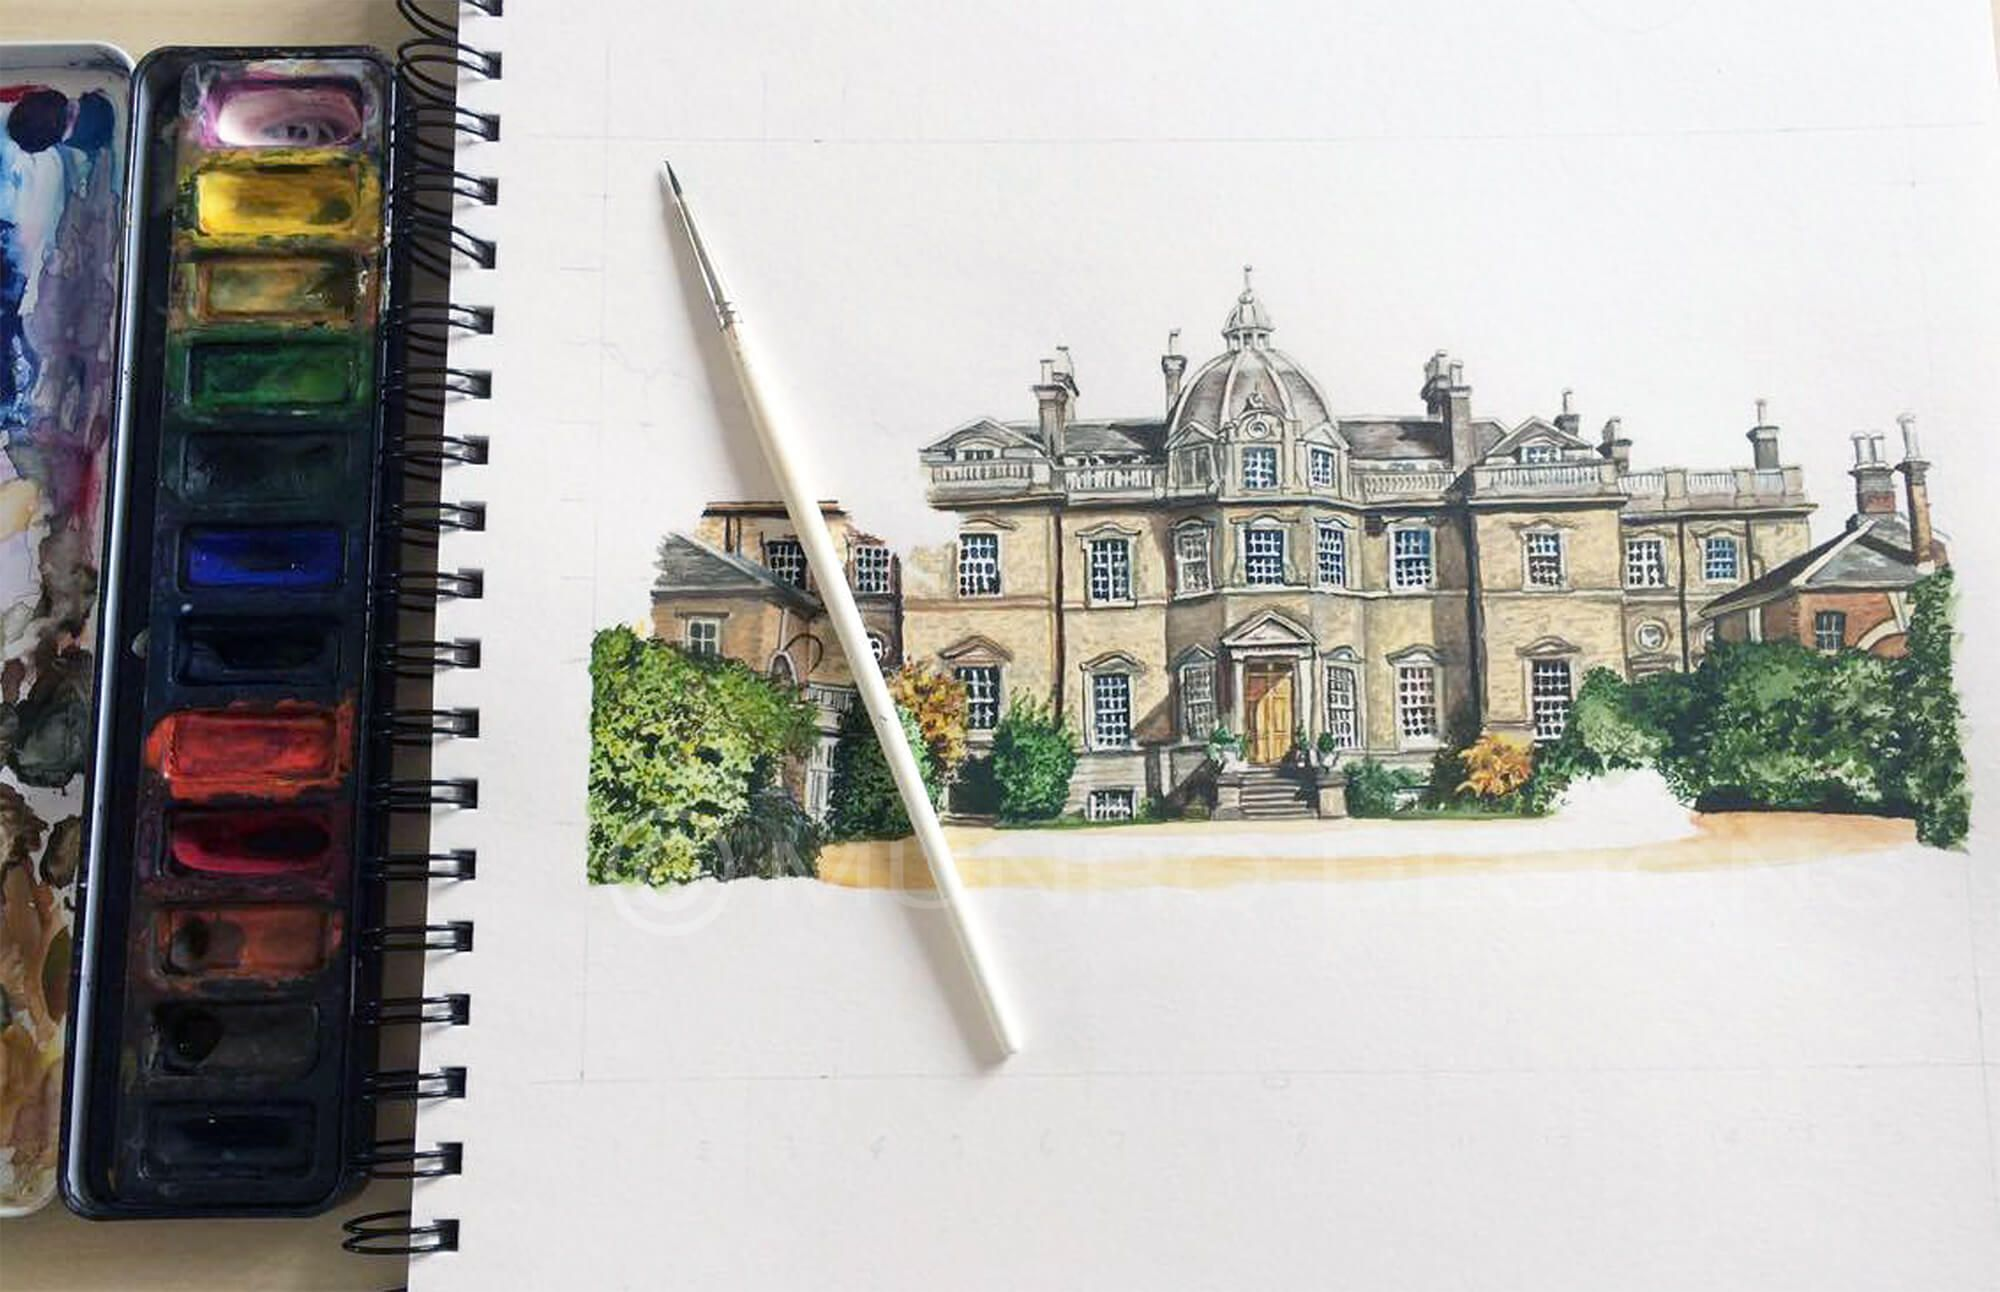 MUNRO DESIGNS BESPOKE PAINTING - Hampton Court House, Wedding Present from the bride to the groom